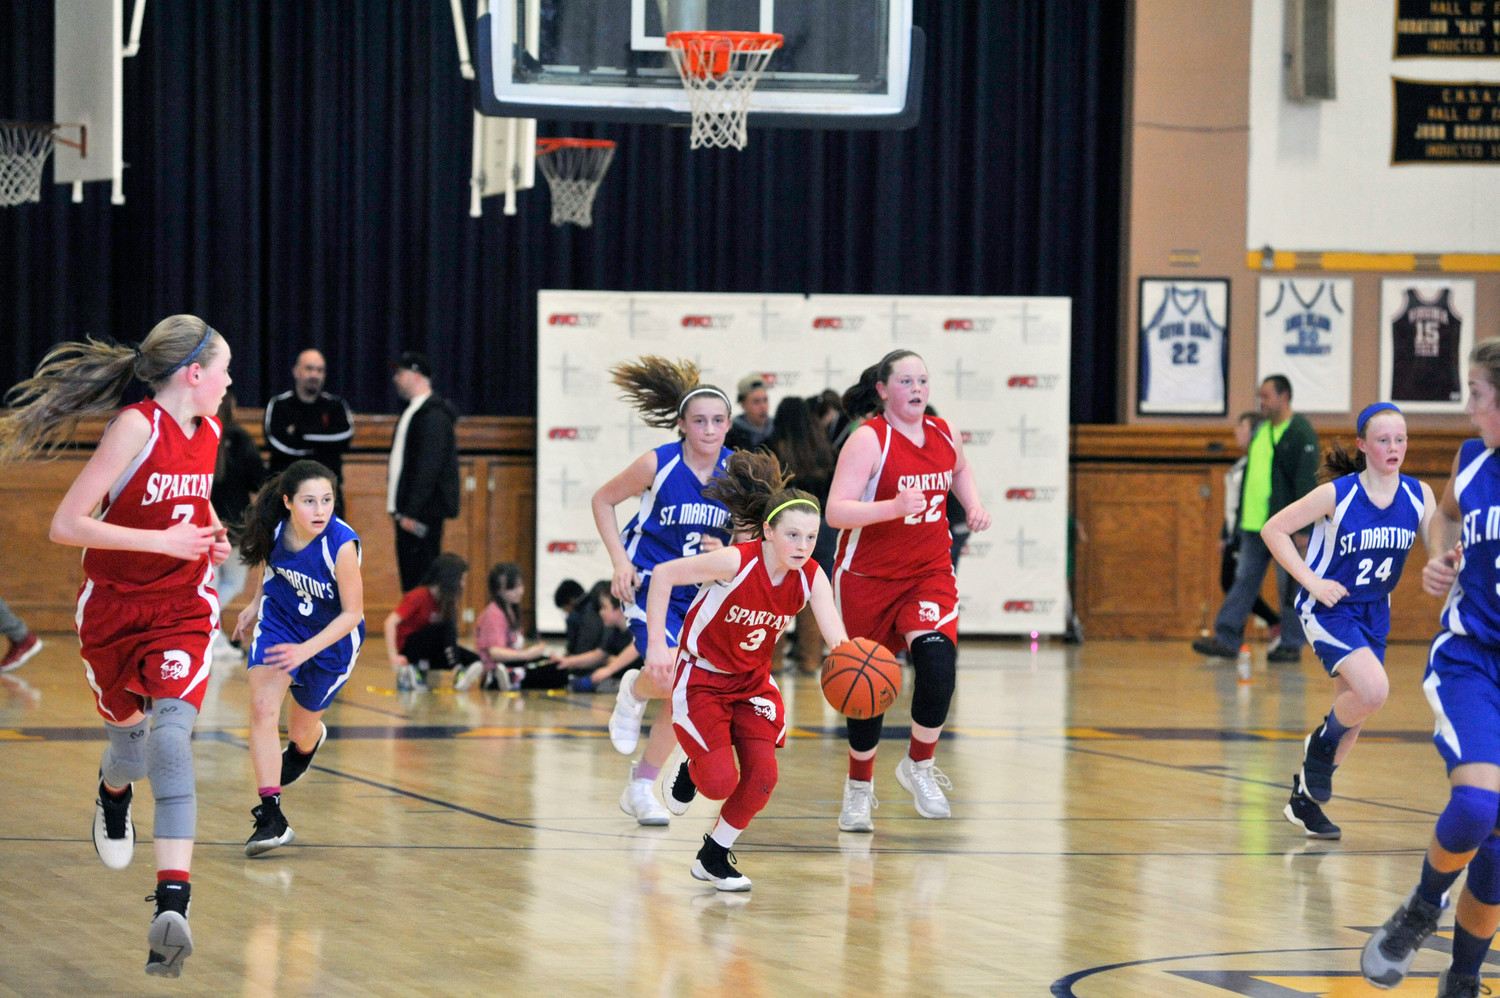 Sacred Heart's Olivia Schmitt dribbles during the sixth-grade girls' game against St. Martin de Porres, Poughkeepsie. Sacred Heart won 44-20.